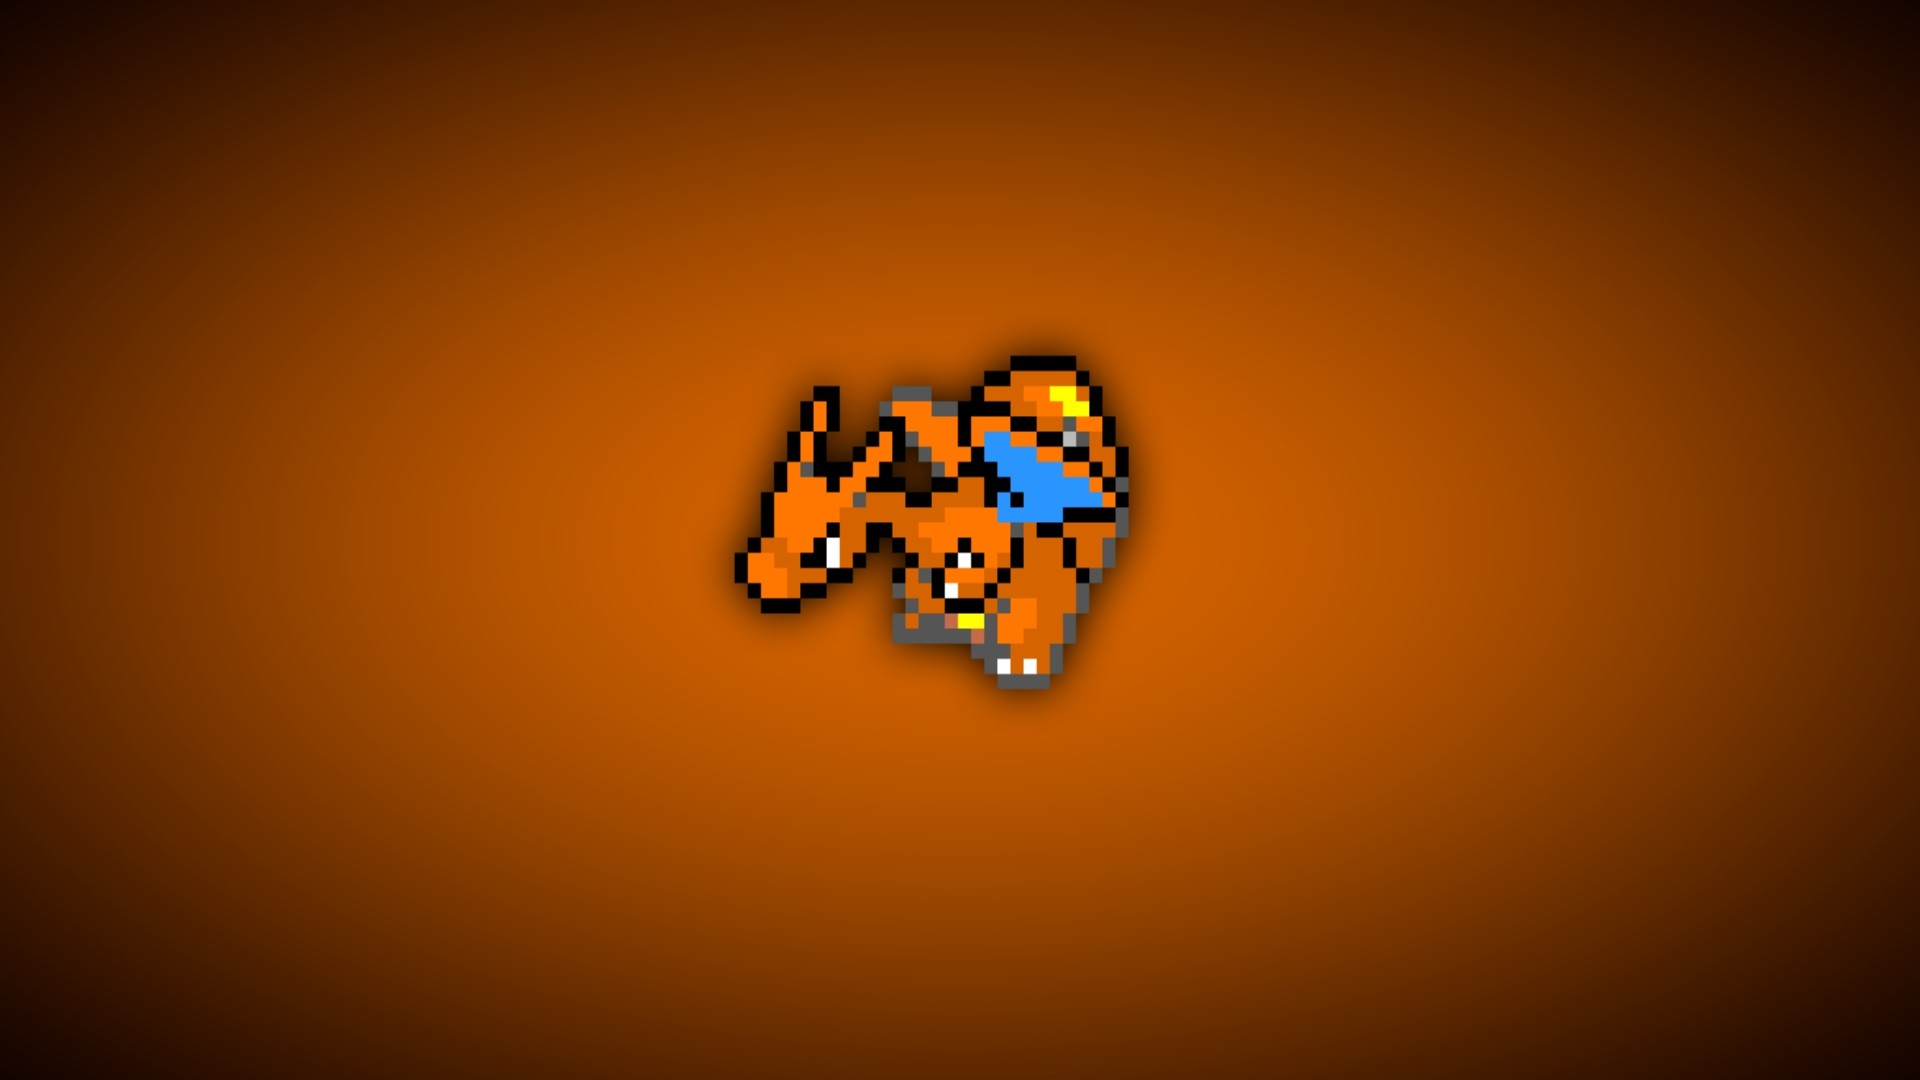 1920x1080 Charizard Backgrounds - Wallpaper Cave | Images Wallpapers | Pinterest |  Digimon, Wallpaper and Hd wallpaper